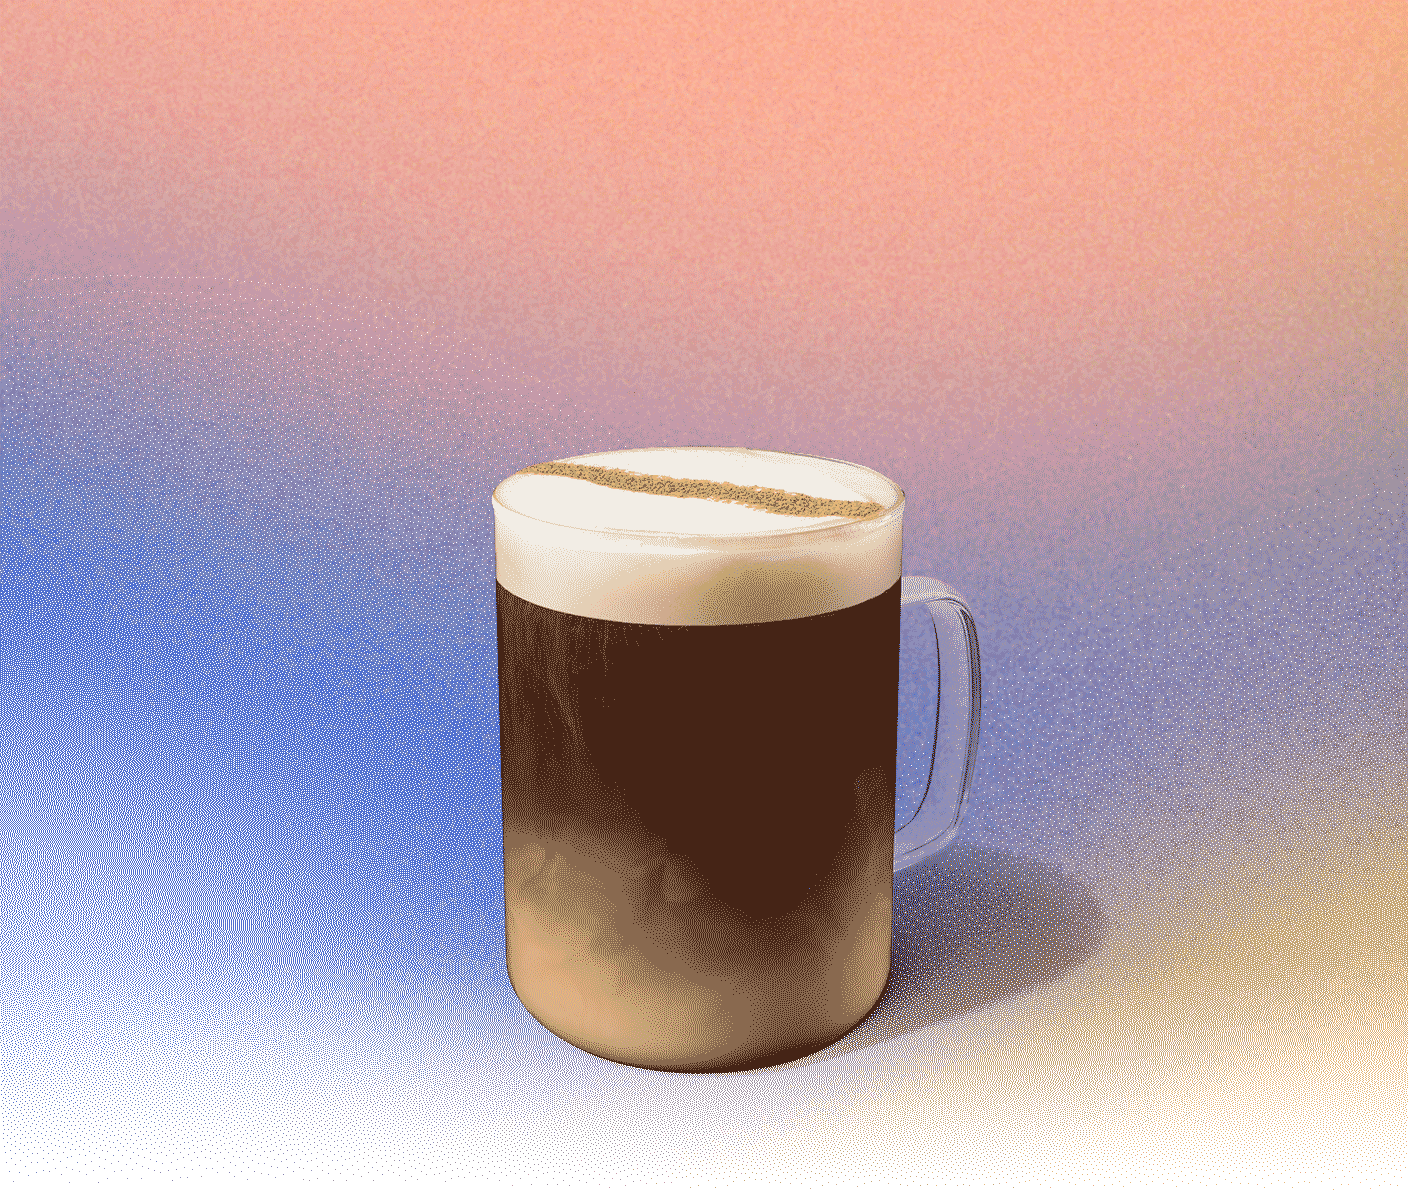 Hot coffee in a glass mug with foamy top